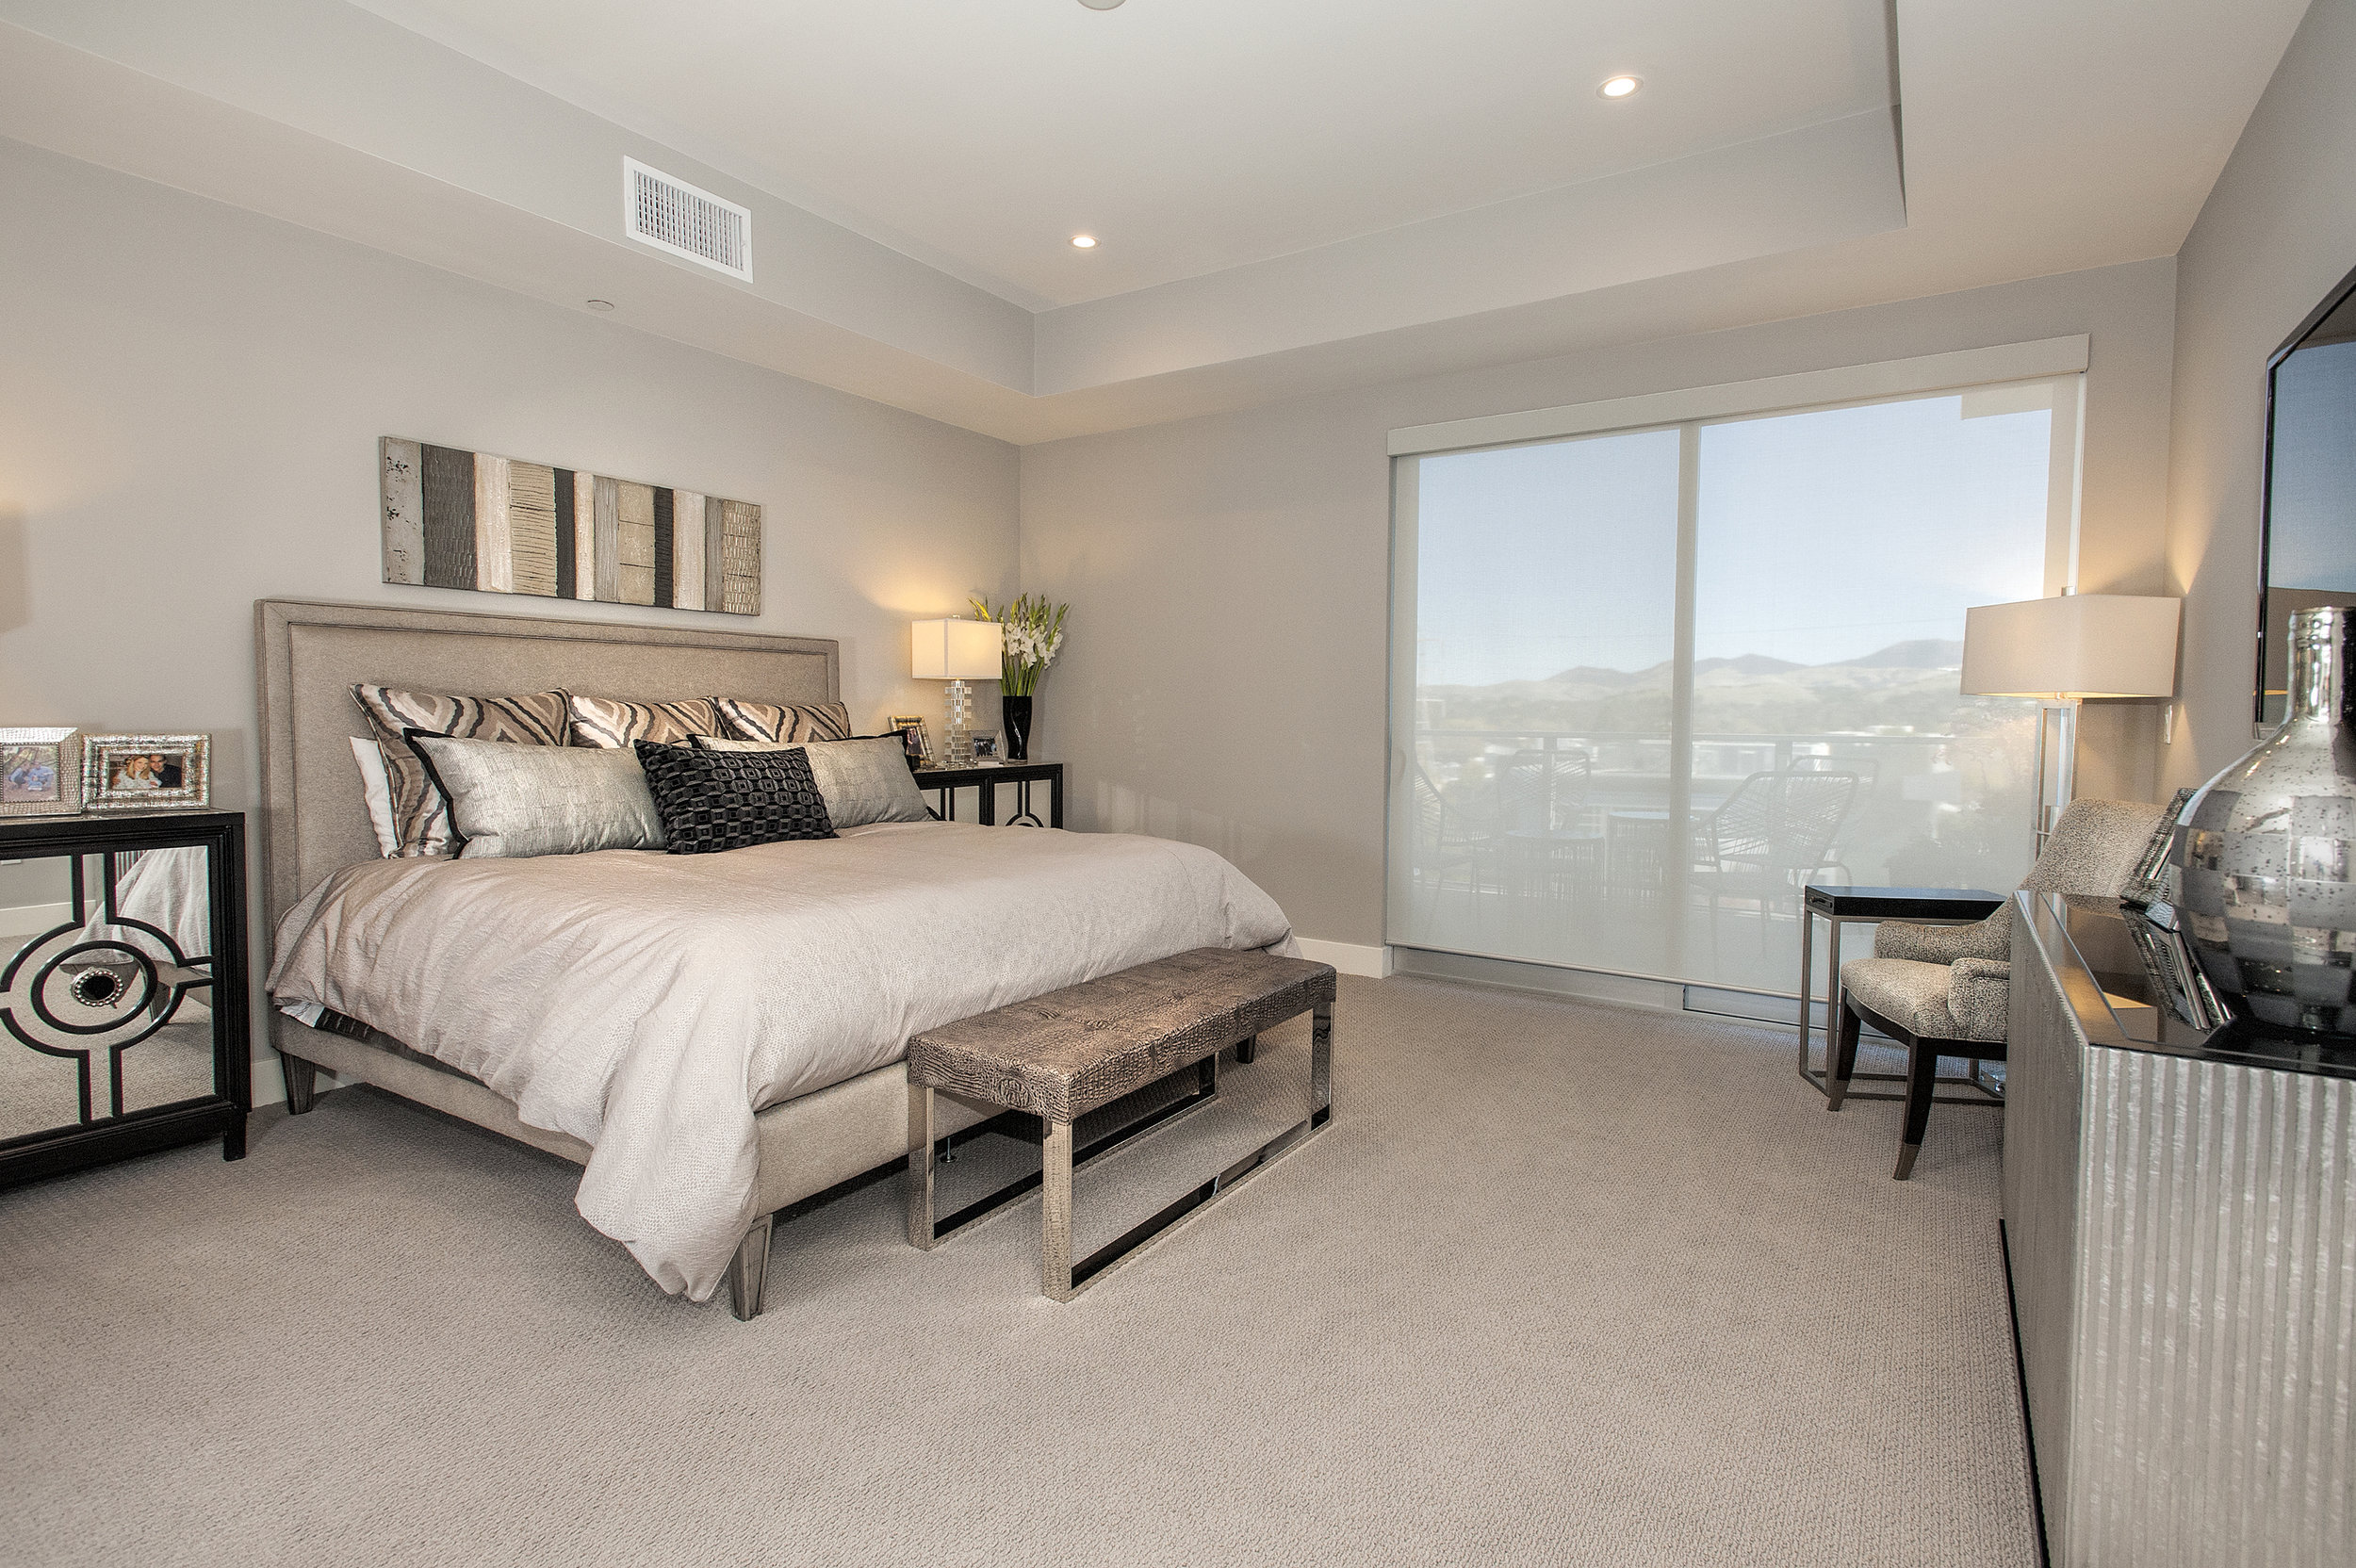 Bedroom with gray furnishing and a glass window